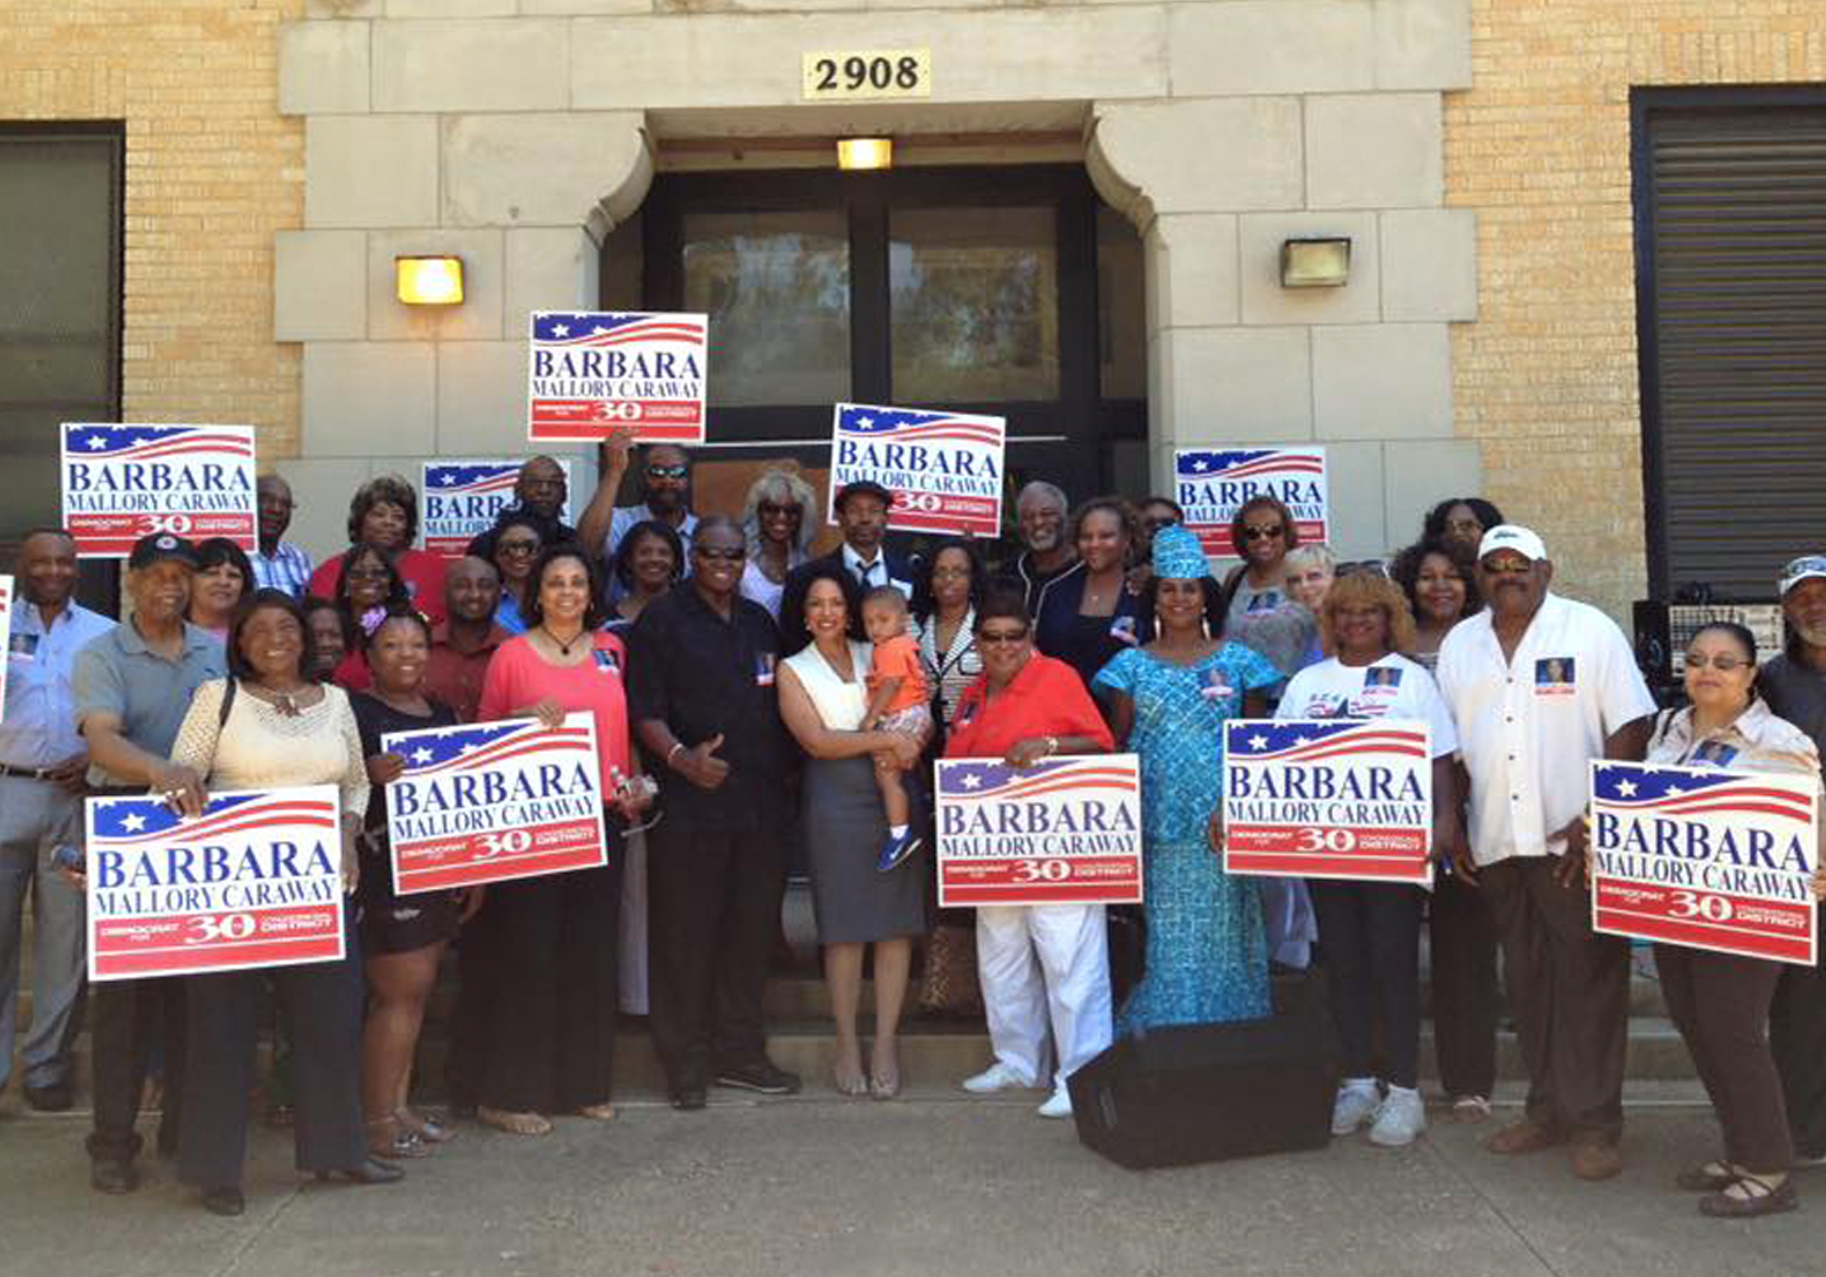 A group of people holding banners in support of Barbara Mallory Caraway